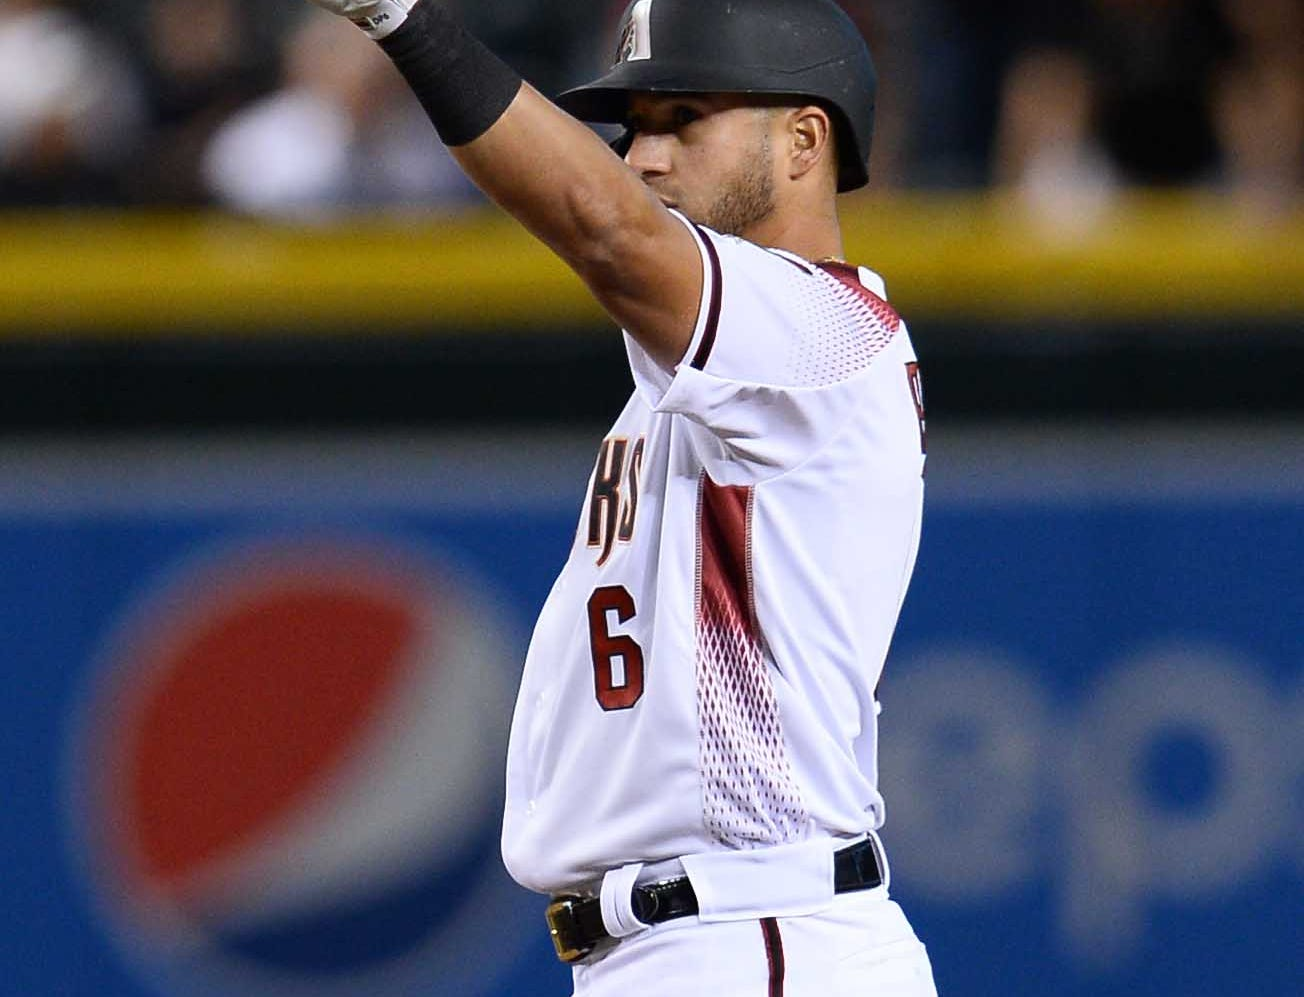 Apr 10, 2019; Phoenix, AZ, USA; Arizona Diamondbacks right fielder David Peralta (6) reacts after hitting a double against the Texas Rangers during the third inning at Chase Field. Mandatory Credit: Joe Camporeale-USA TODAY Sports